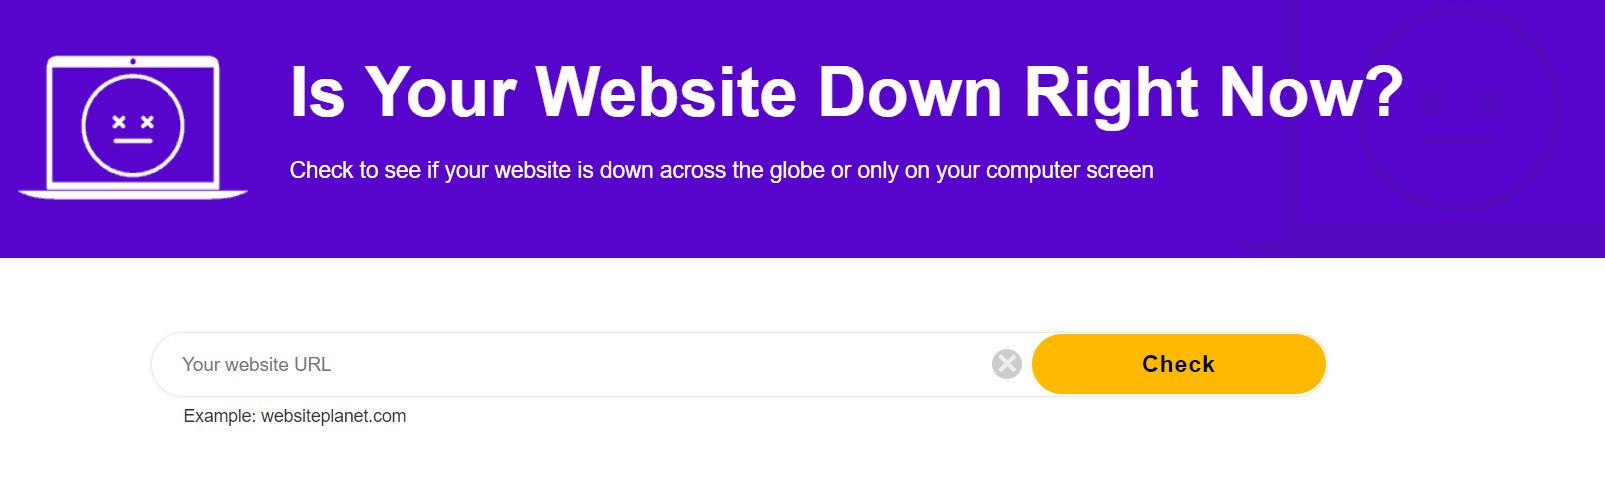 Is Your Website Down Right Now?